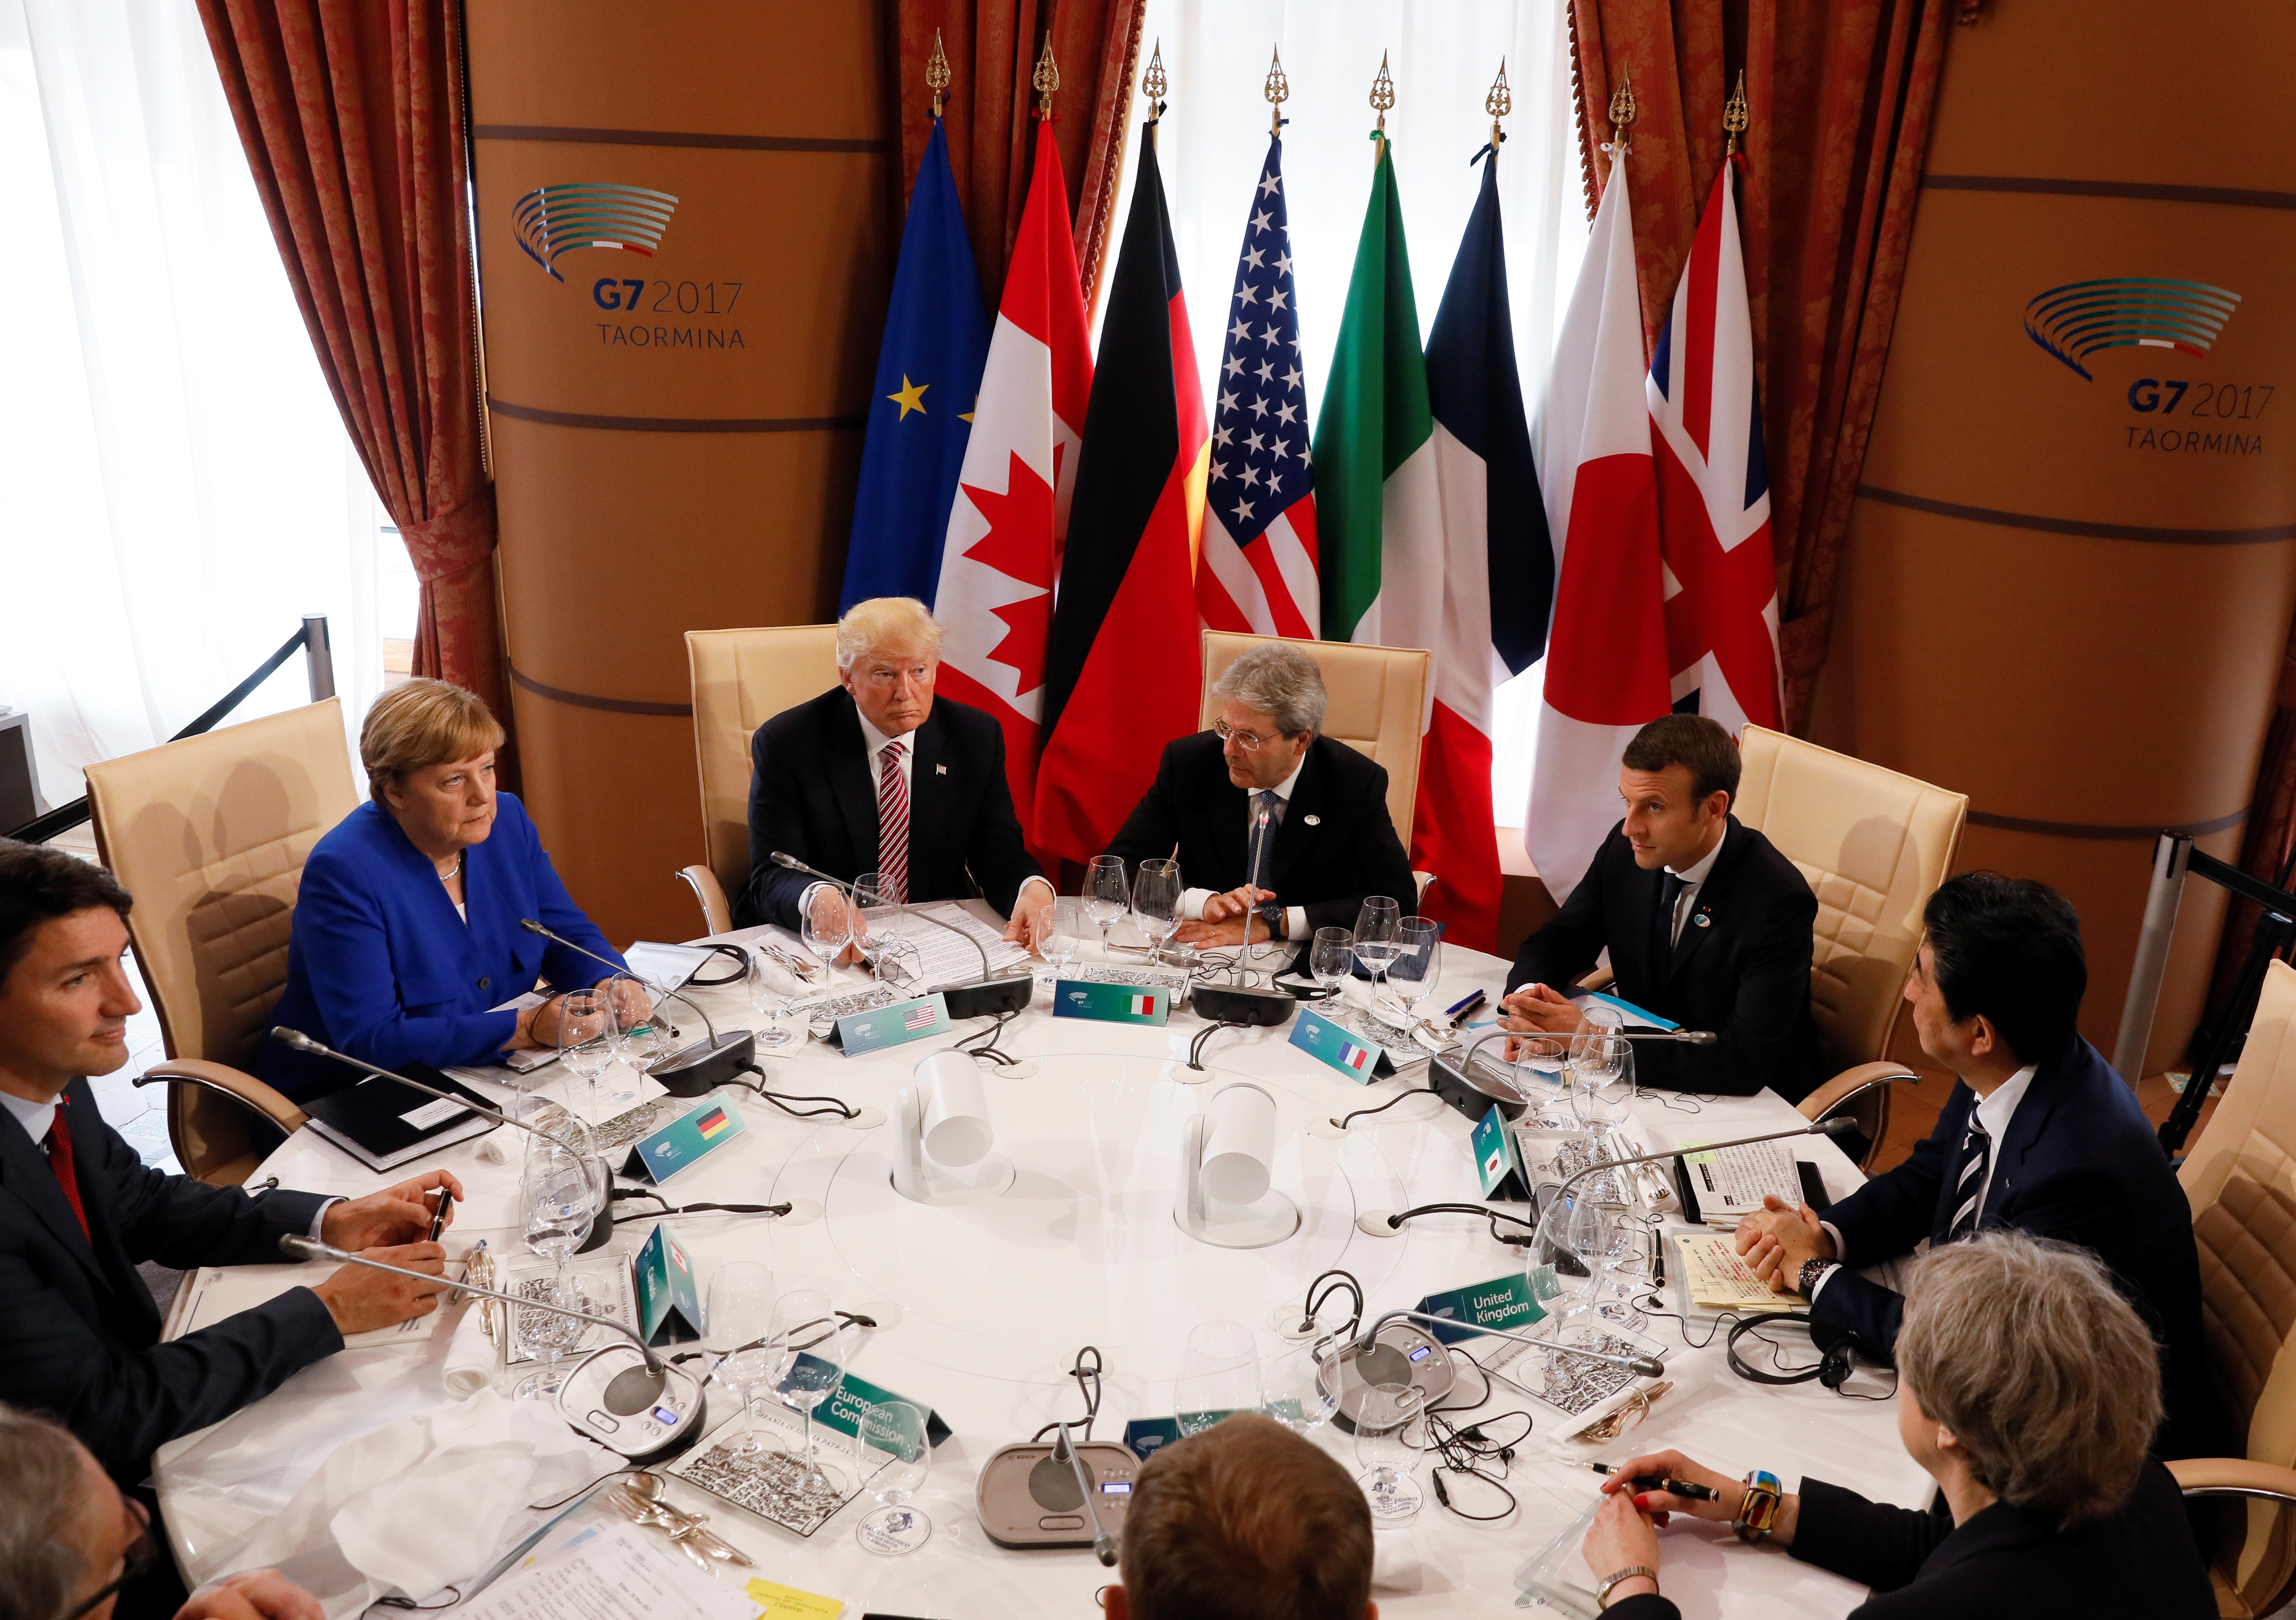 (L-R) Canadian Prime Minister Justin Trudeau, German Chancellor Angela Merkel, U.S. President Donald Trump, Italian Prime Minister Paolo Gentiloni, French President Emmanuel Macron, Japanese Prime Minister Shinzo Abe, Britain's Prime Minister Theresa May, European Council President Donald Tusk and European Commission President Jean-Claude Juncker sit around a table during the G7 Summit in Taormina, Sicily, Italy, May 26, 2017. REUTERS/Jonathan Ernst